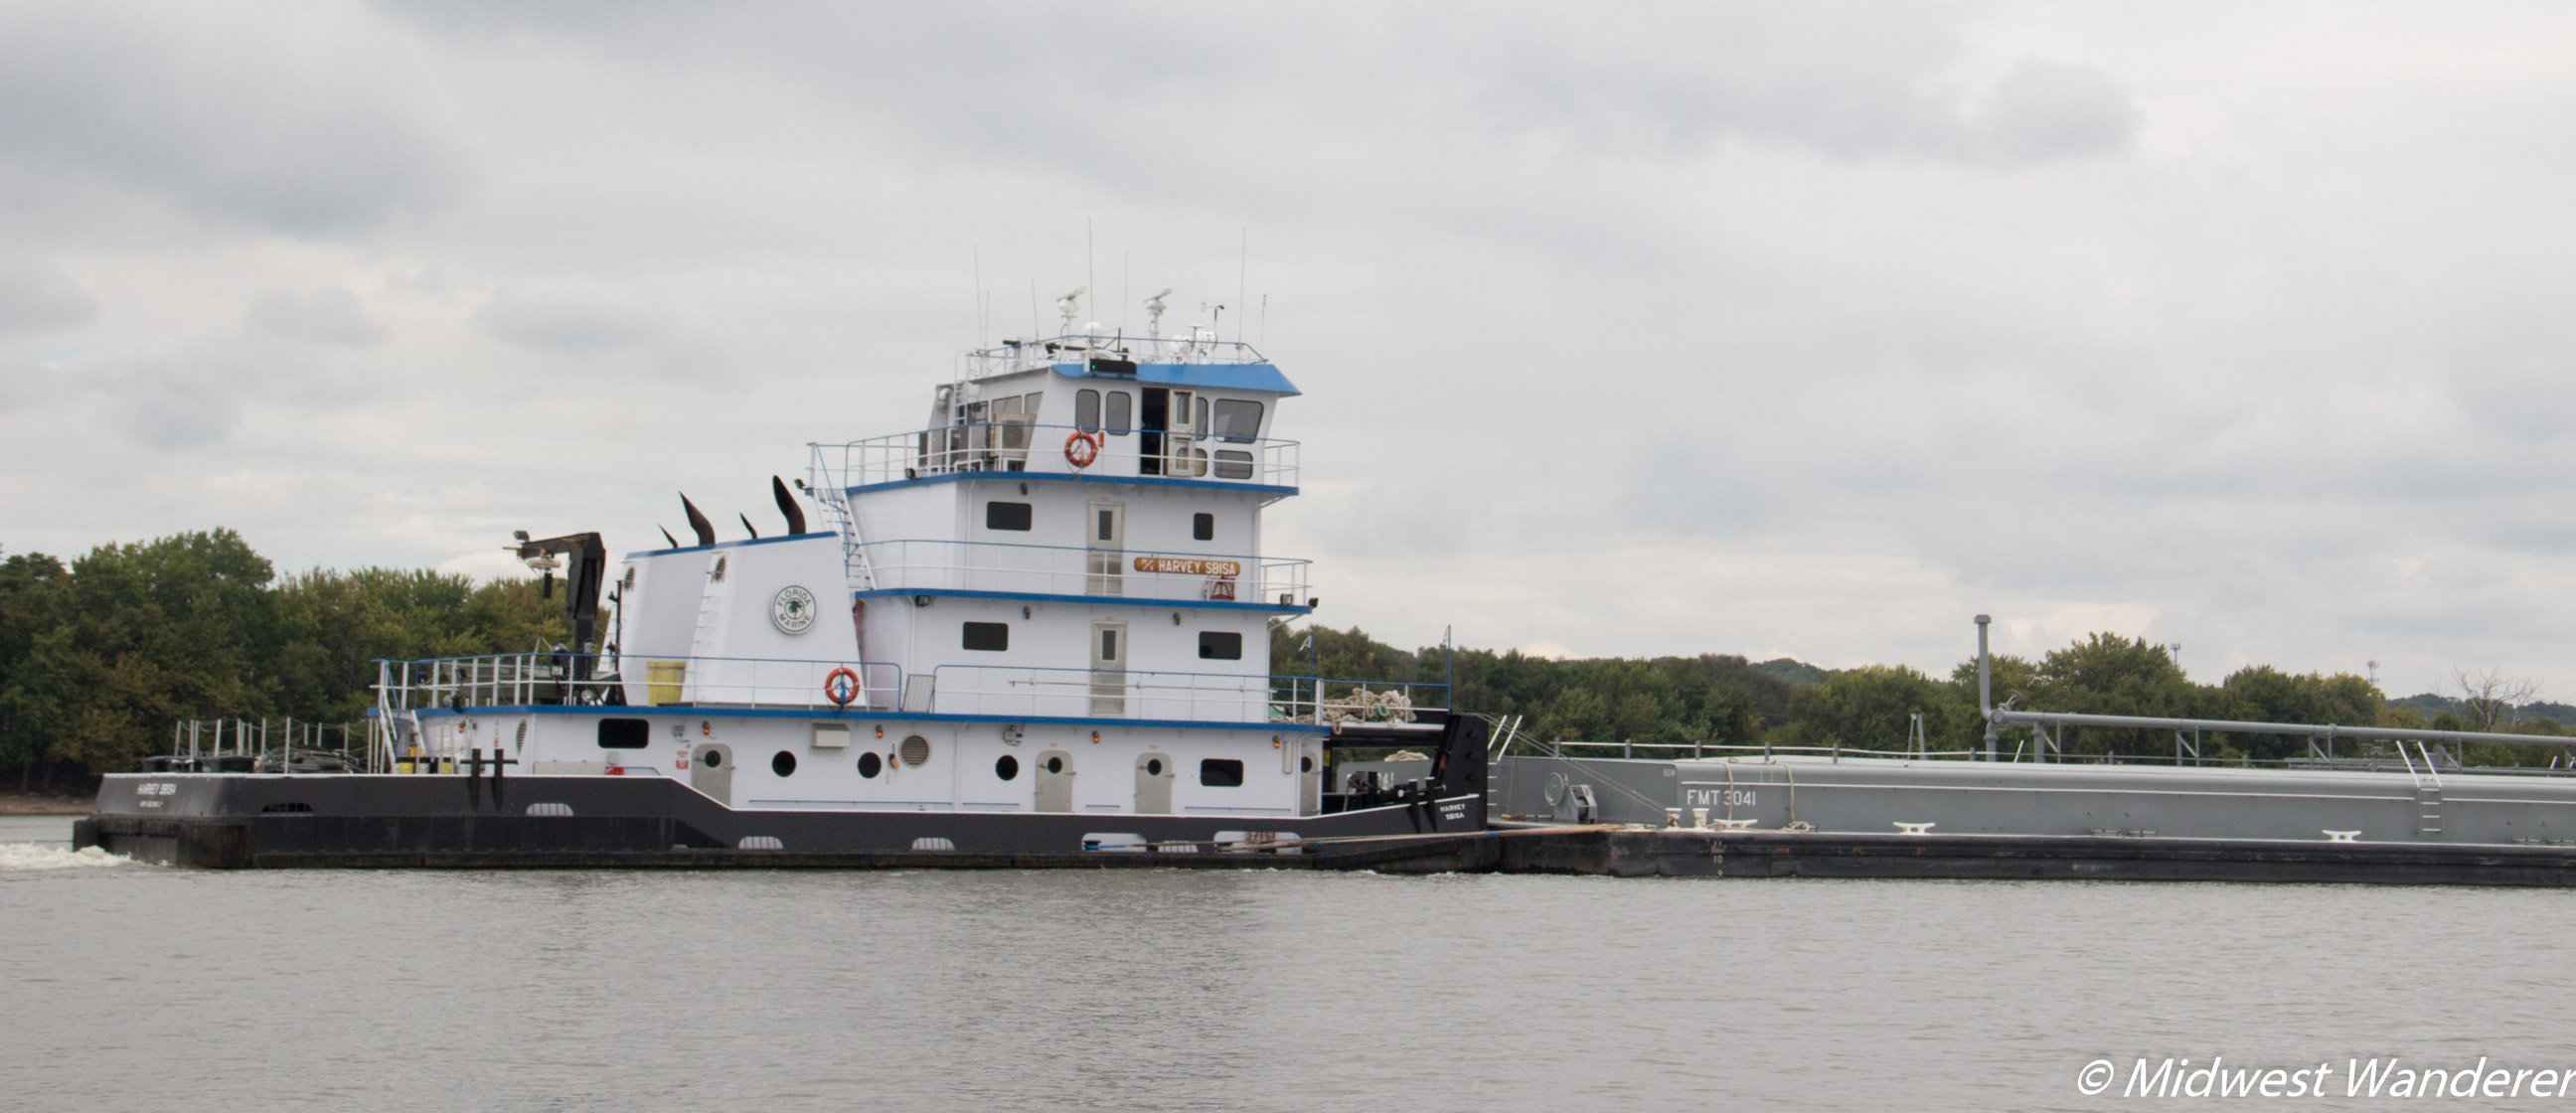 Barge in the Illinois River